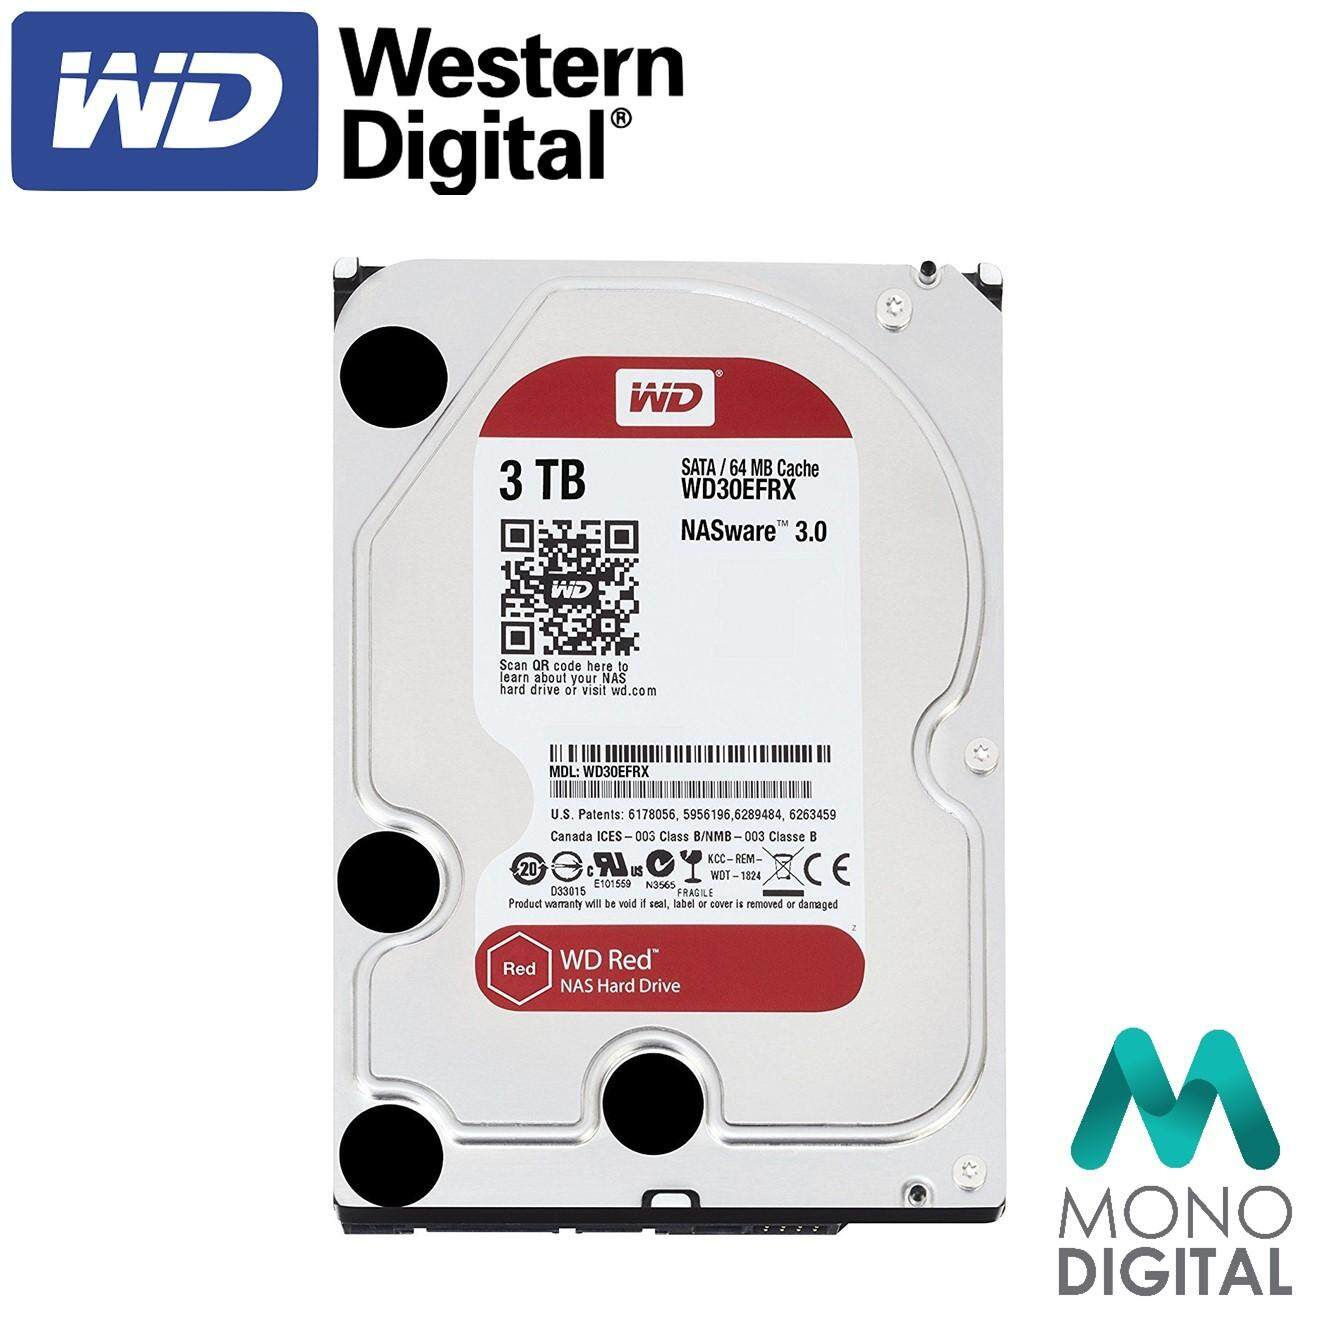 Wd External Hard Disk With Best Online Price In Malaysia Hardisk Ssd My Pasport 256gb Western Digital Red 3tb Network Attached Storage Nas 64mb Sata Iii Drive